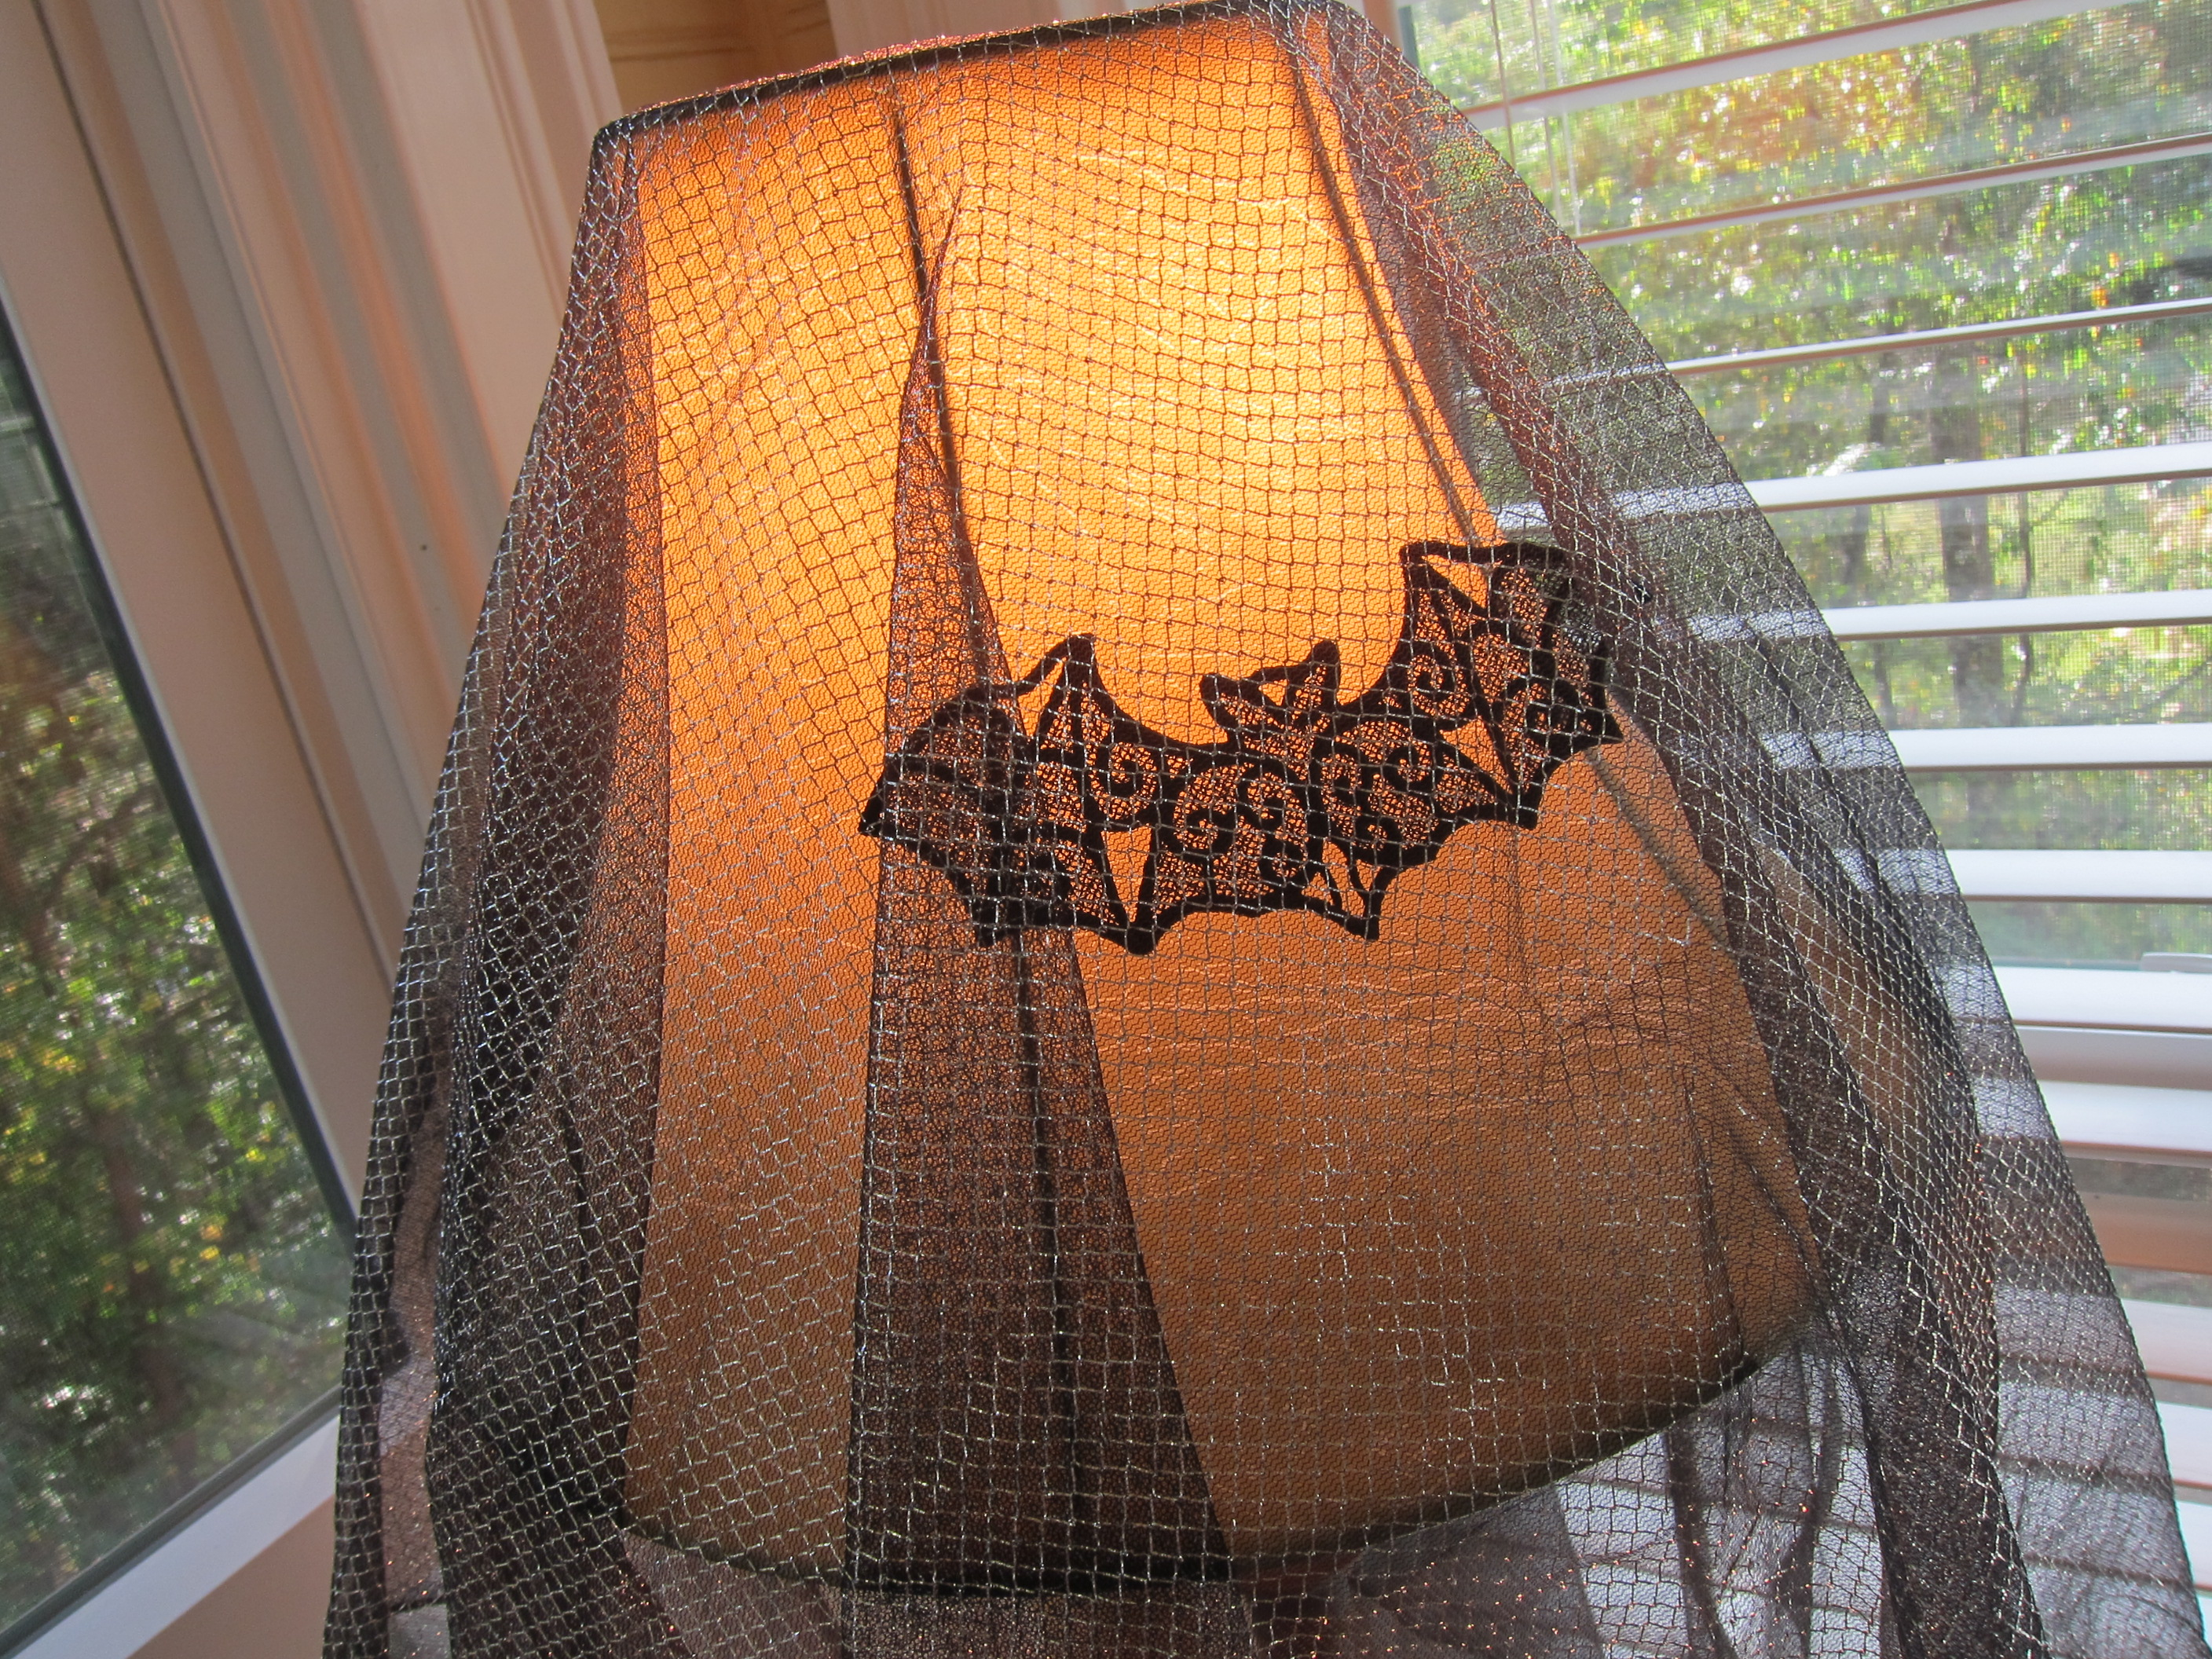 Bat embroidery design from urbanthreads.com.